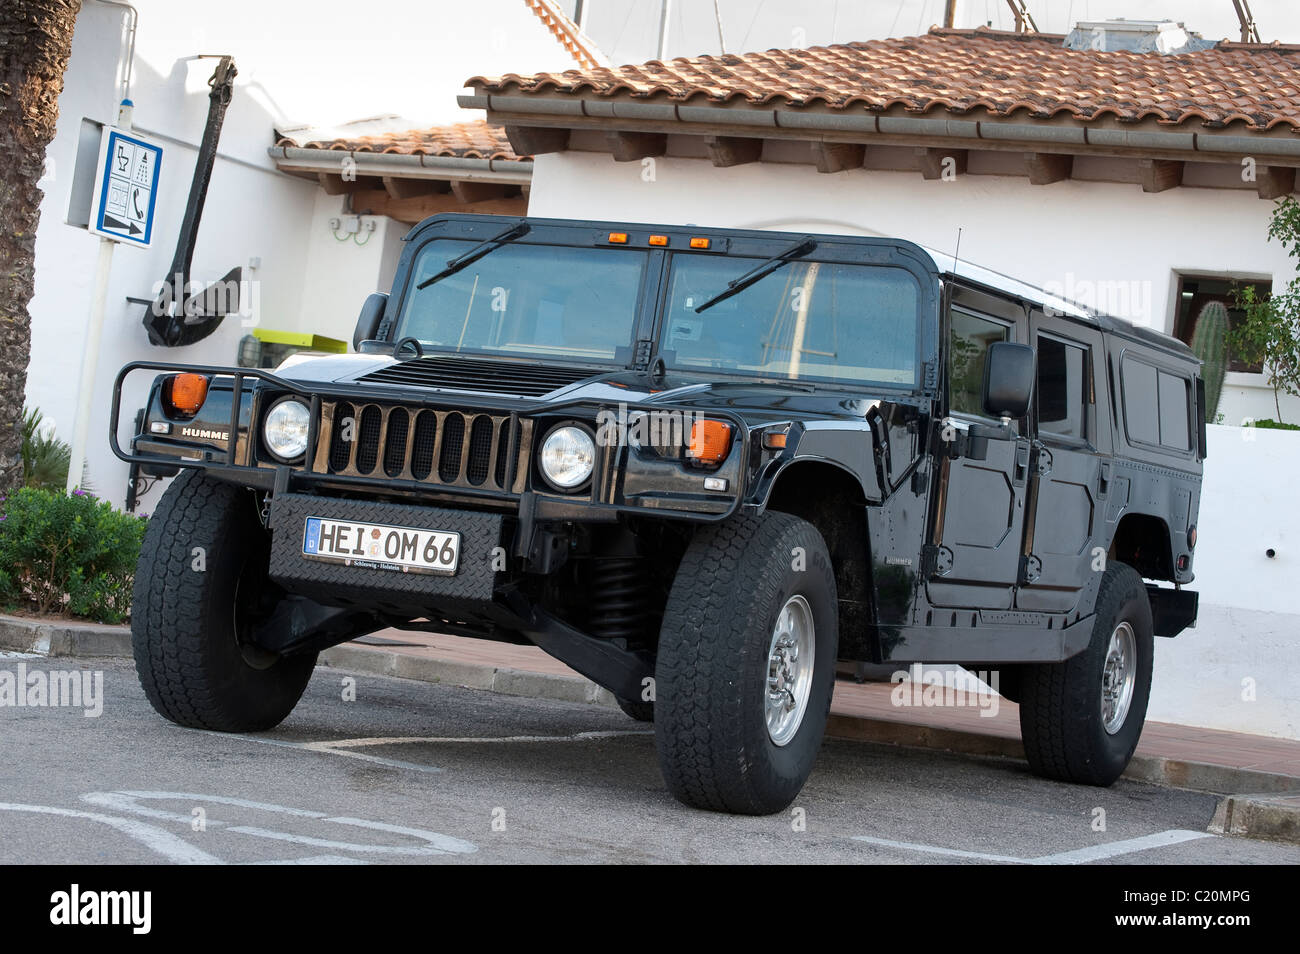 Hummer h1 civilian off road vehicle in spain stock image